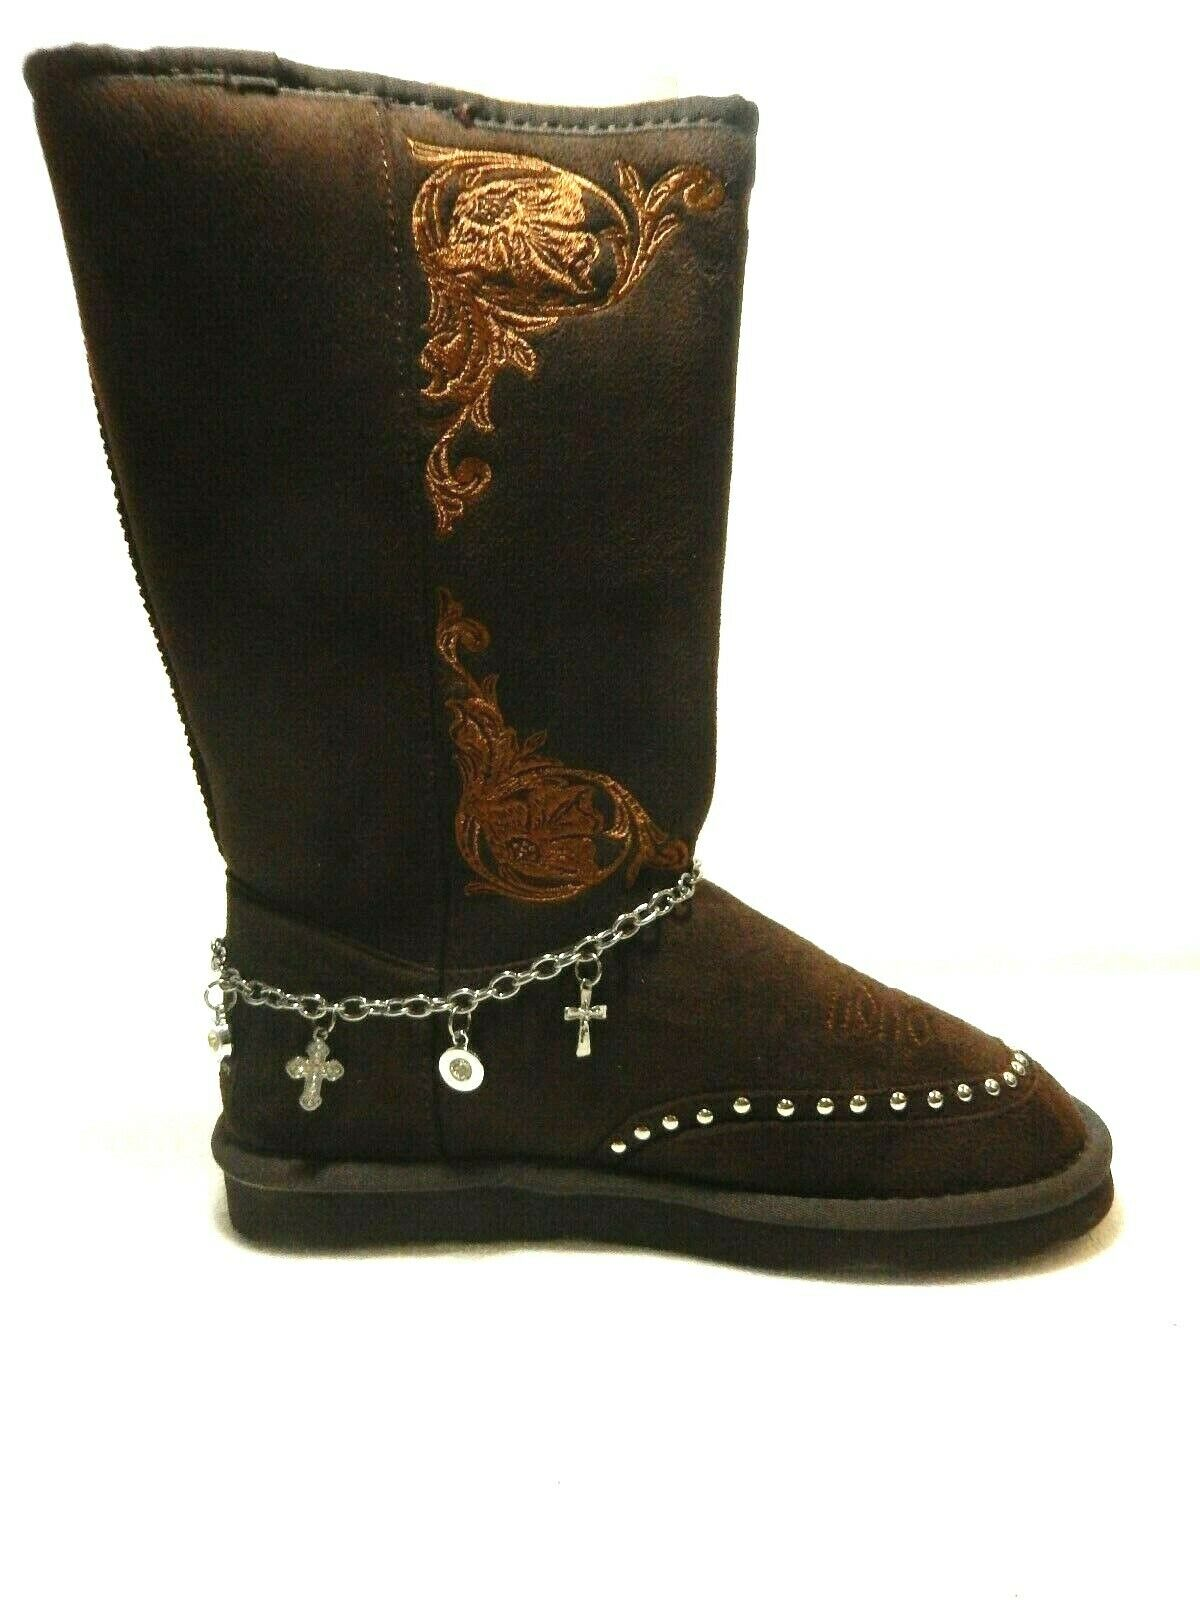 NIB   Montana West Collection Collection stivali BST -021 BR CROSS avvio CHAIN Sz 6  outlet in vendita